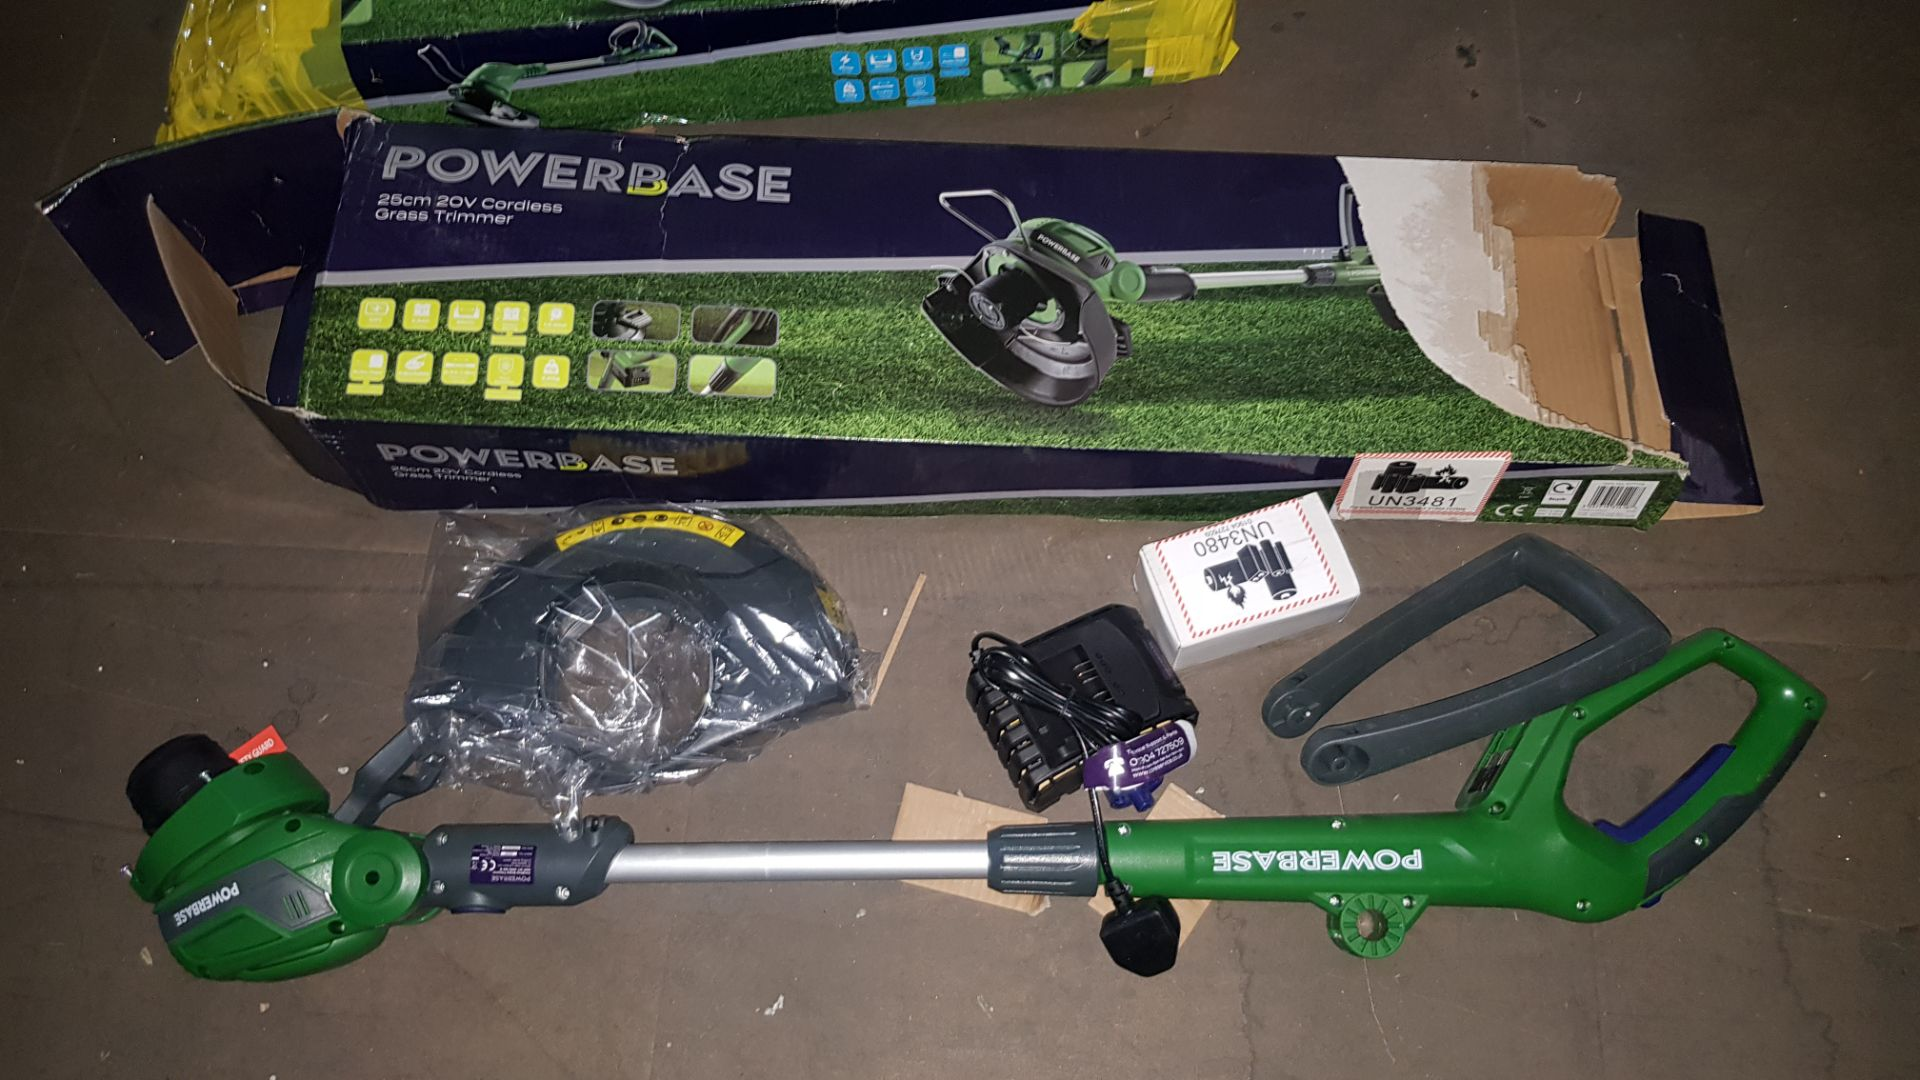 (P5) 2x Powerbase Items. 1x 25cm 20V Cordless Grass Trimmer RRP £59 (Unit Appears Clean, Unused Wit - Image 3 of 5